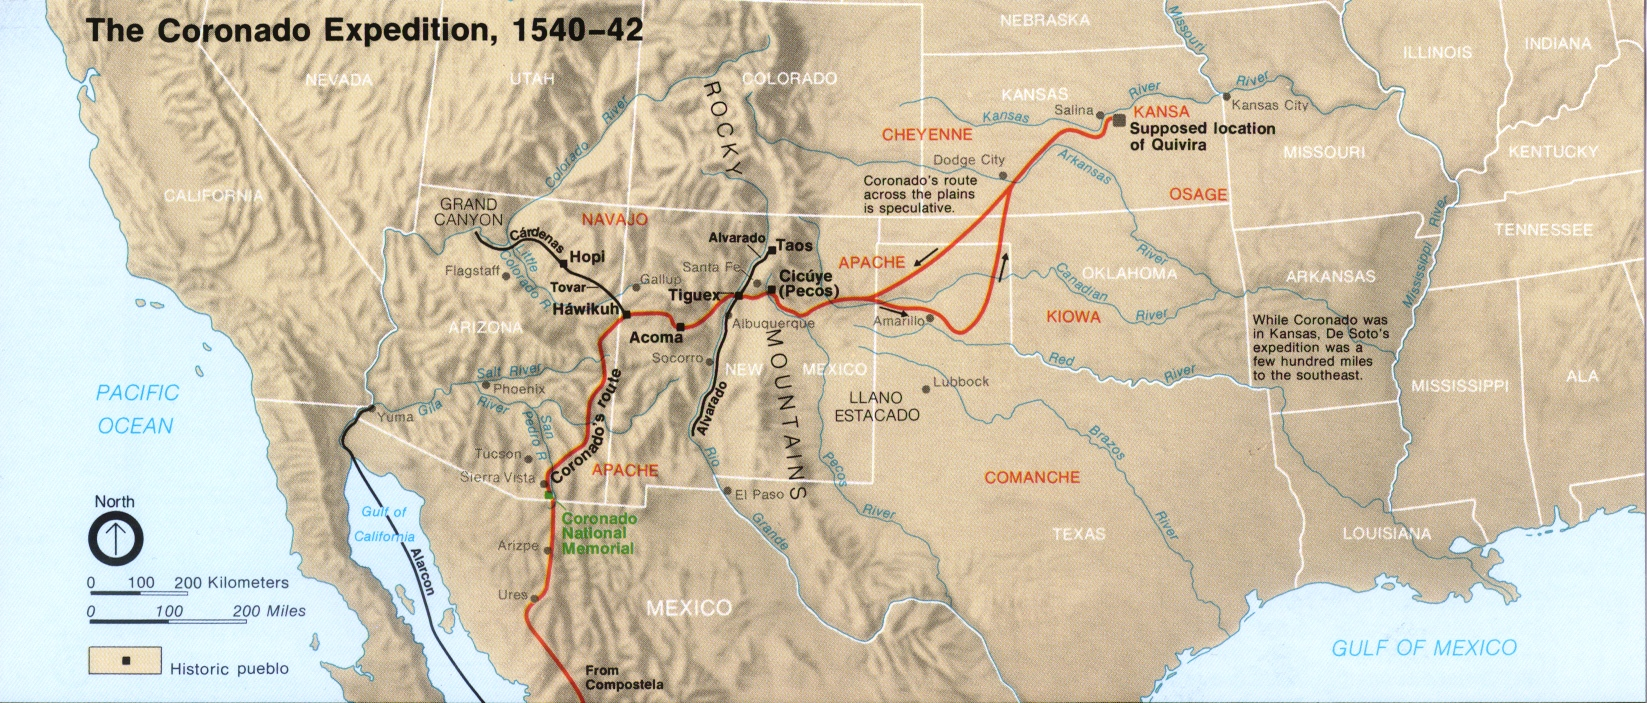 Expedition route map